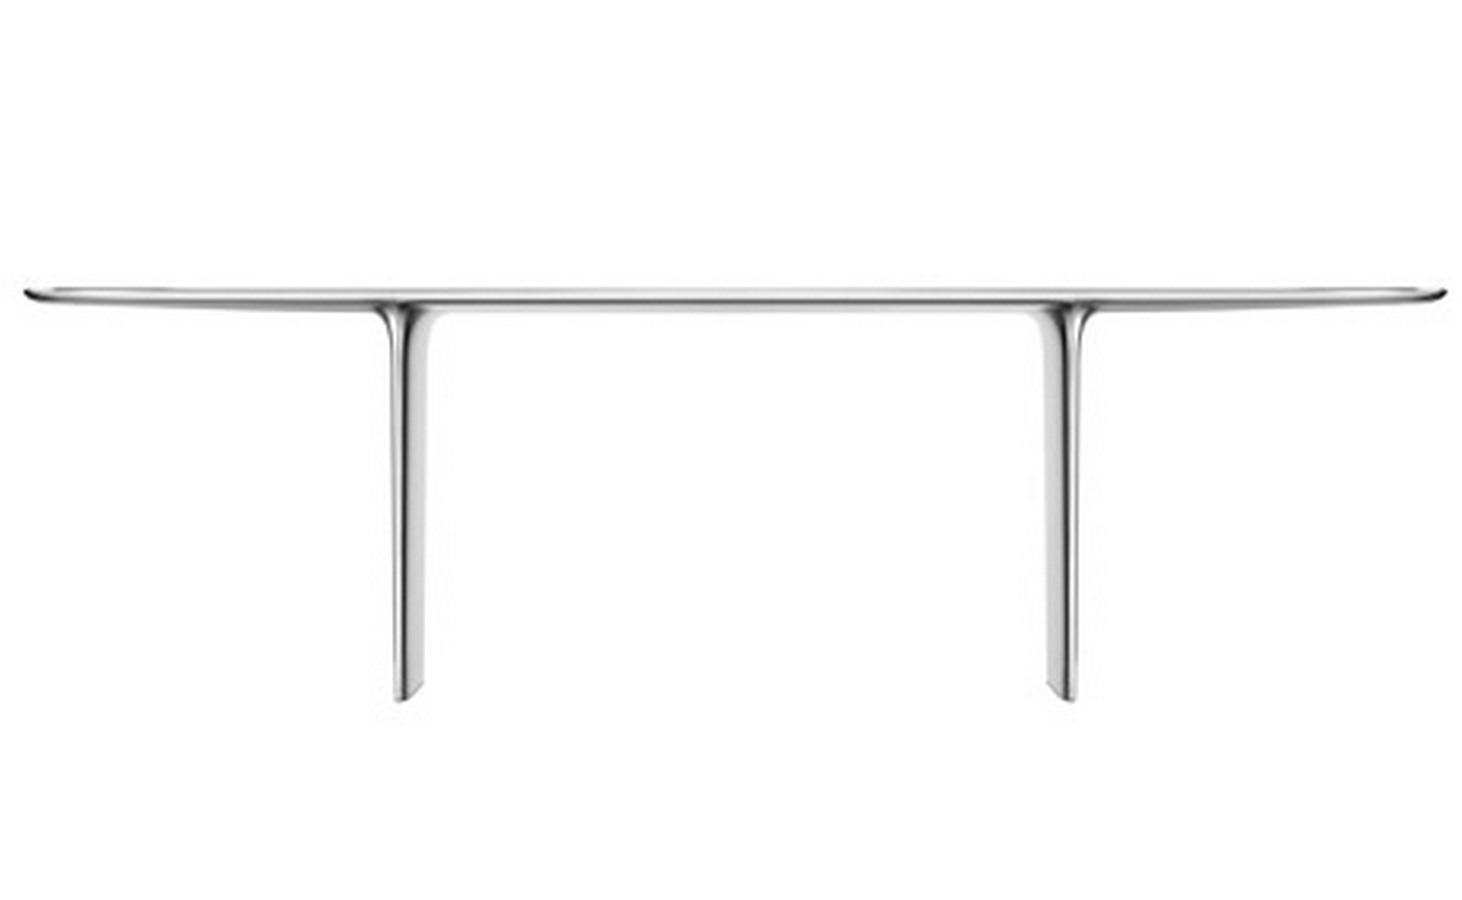 Jonathan Ive- 13 Iconic Products - Sheet24